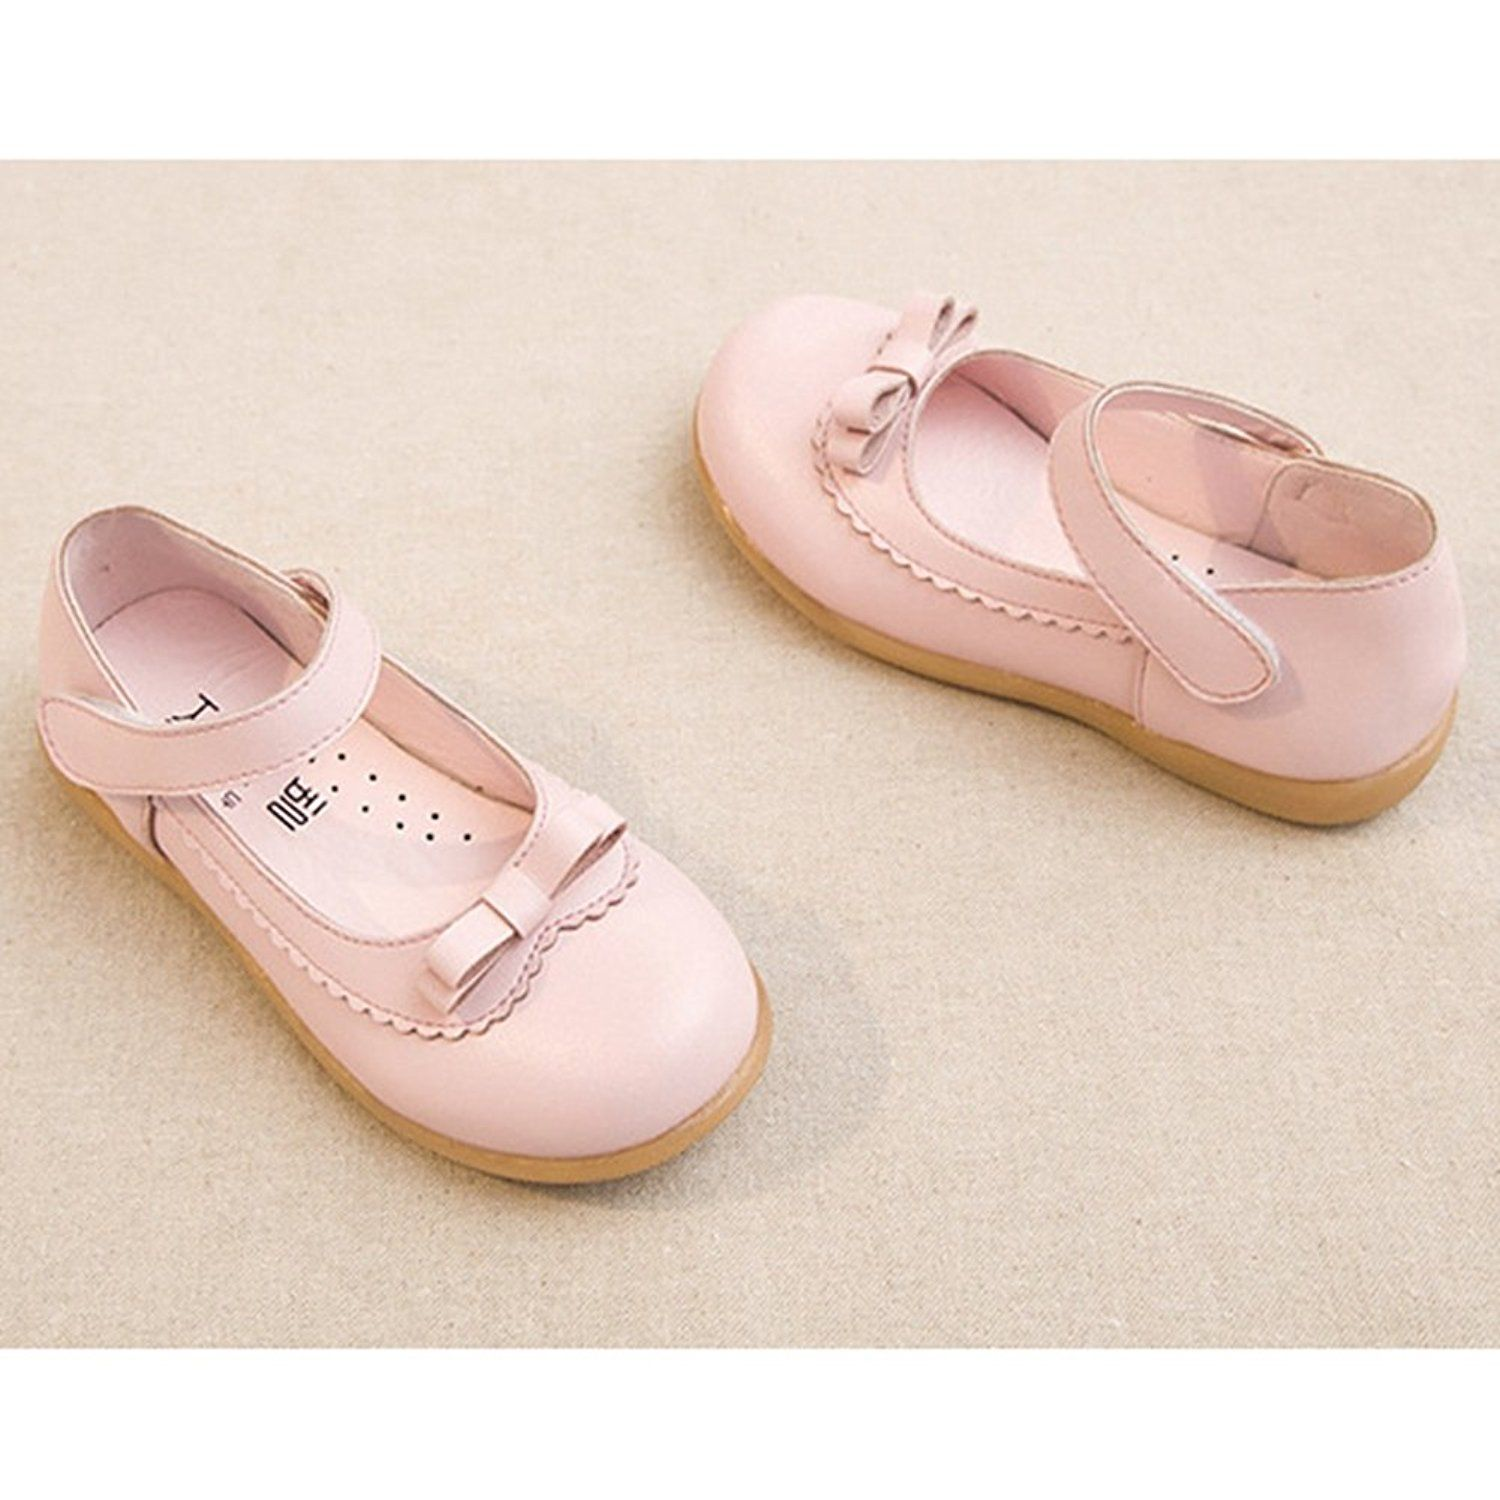 d0fef6663 Amazon.com | T-JULY Girls Bowknot Ballet Flats Shoes Anti-Slip Mary Jane  Dress Shoes (Toddler/Little Kid/Big Kid) | Flats